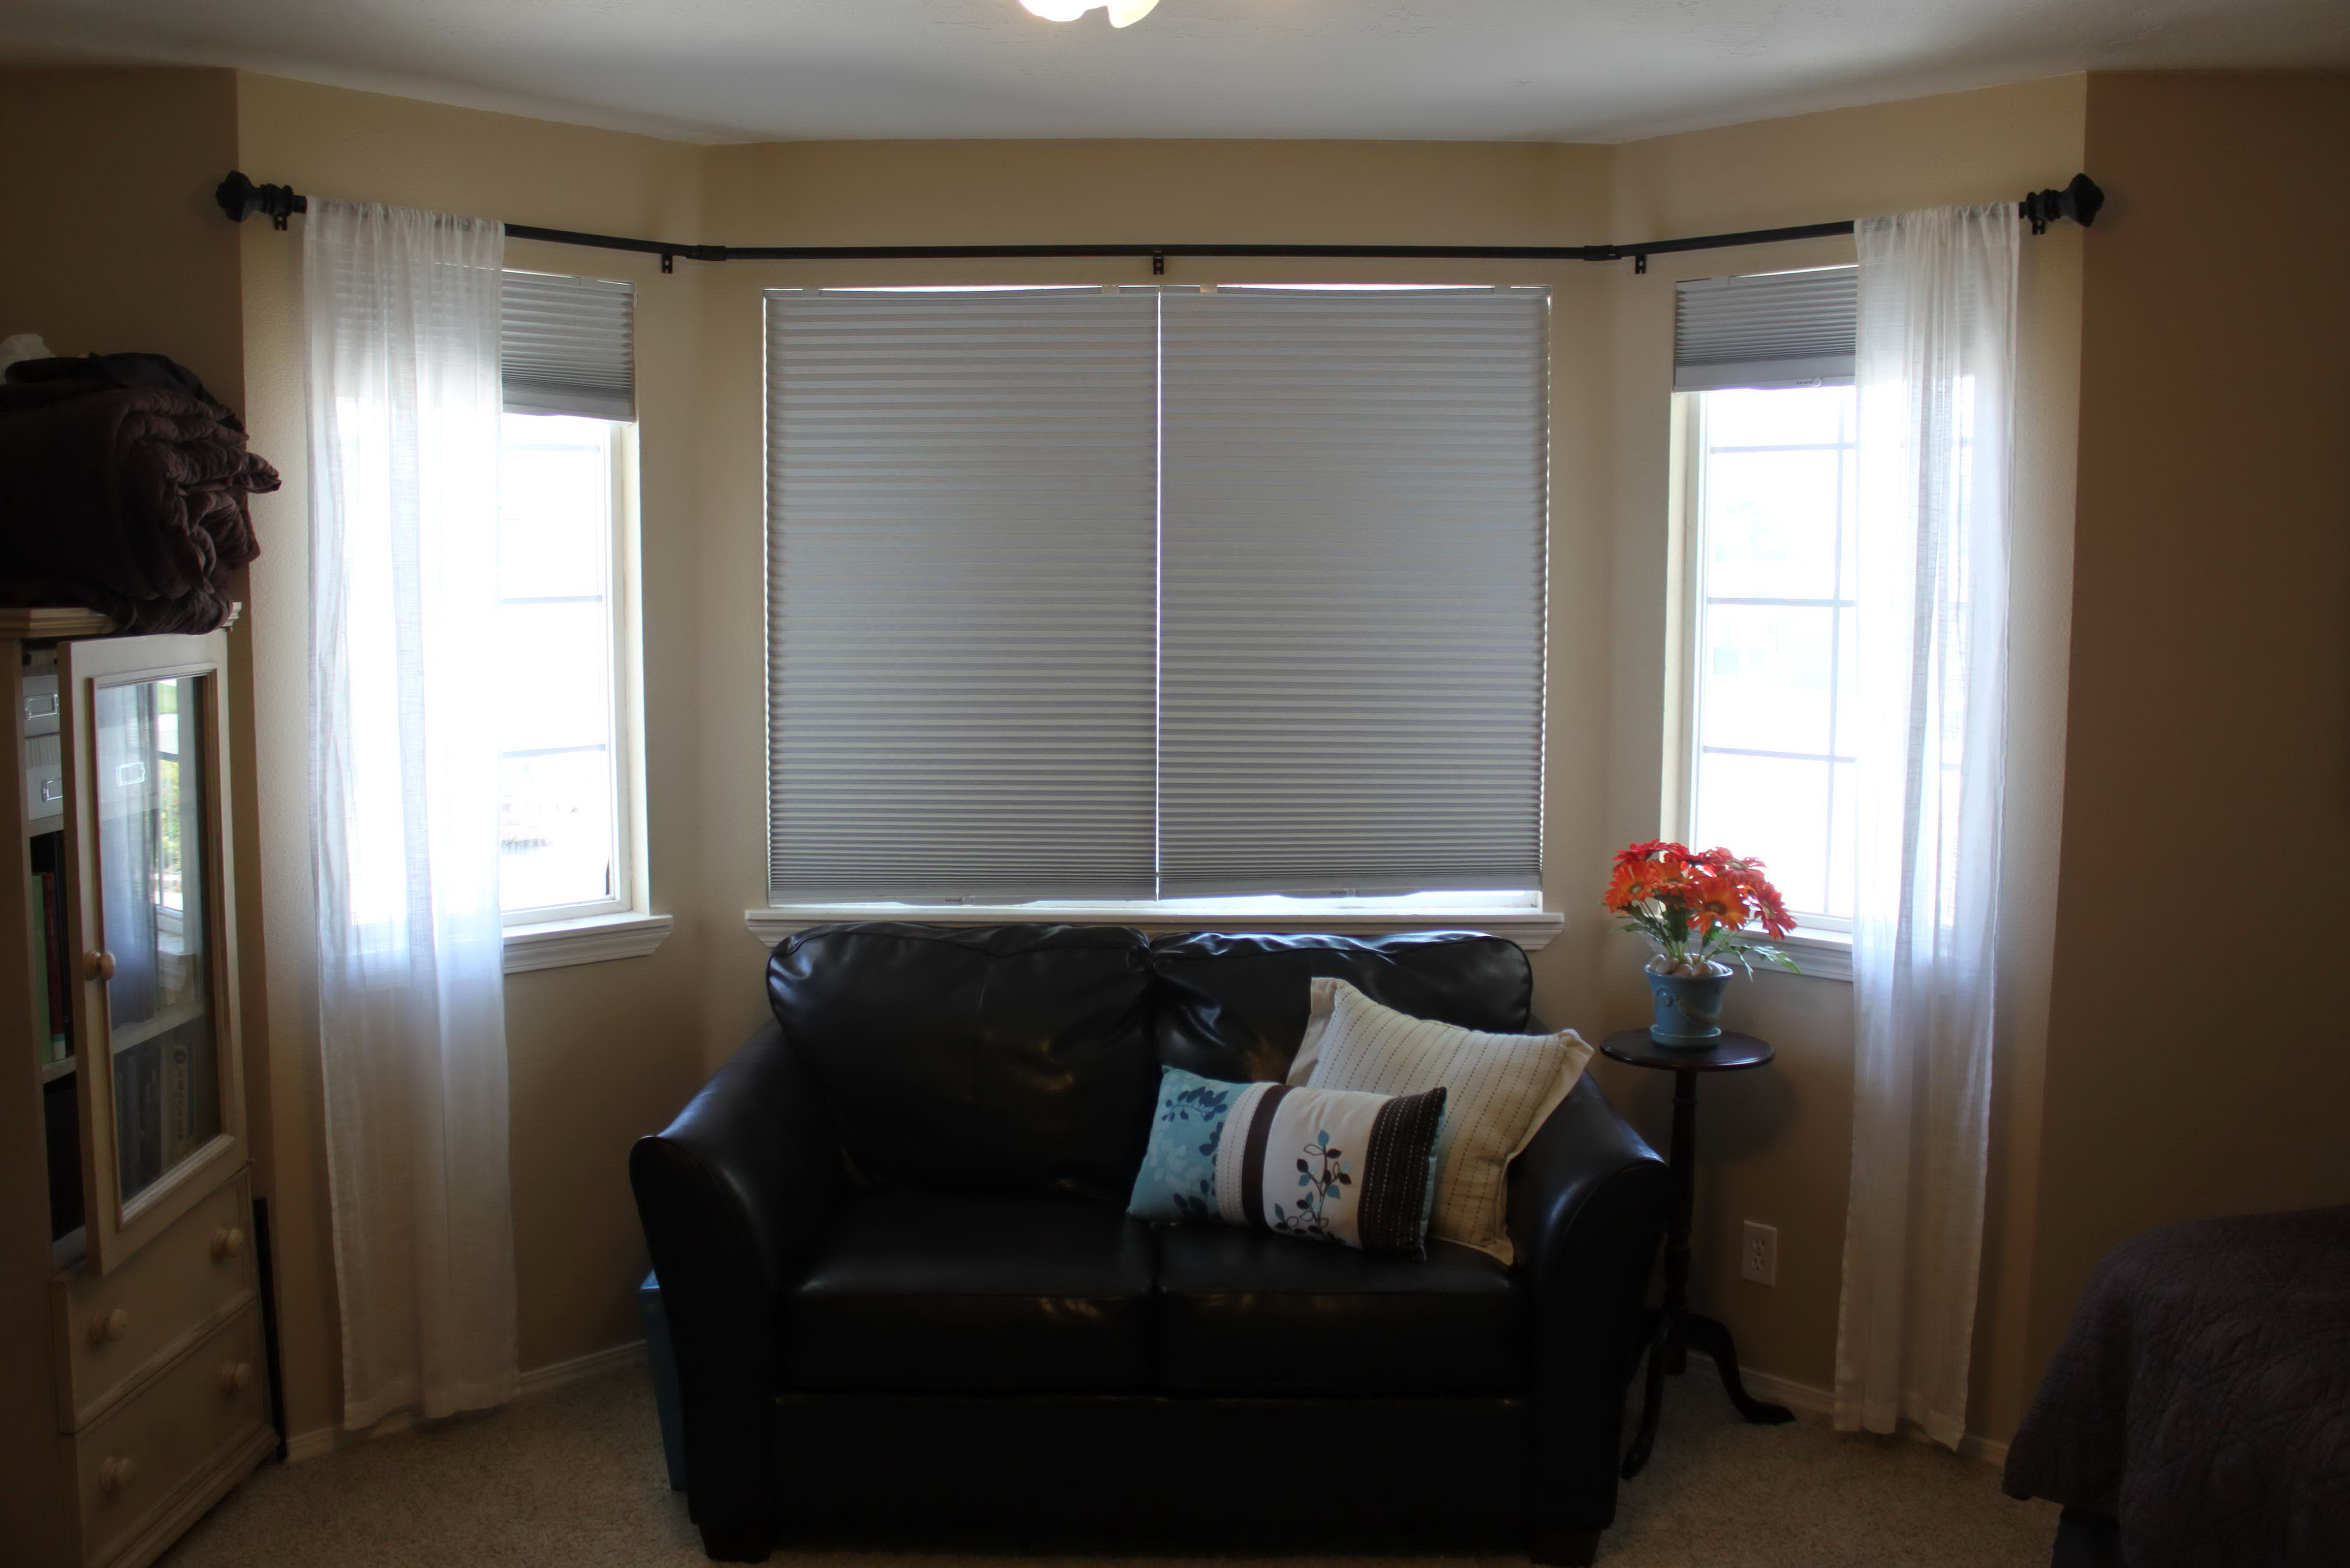 Curtain Rods For Bay Windows Lowes Home Design Ideas